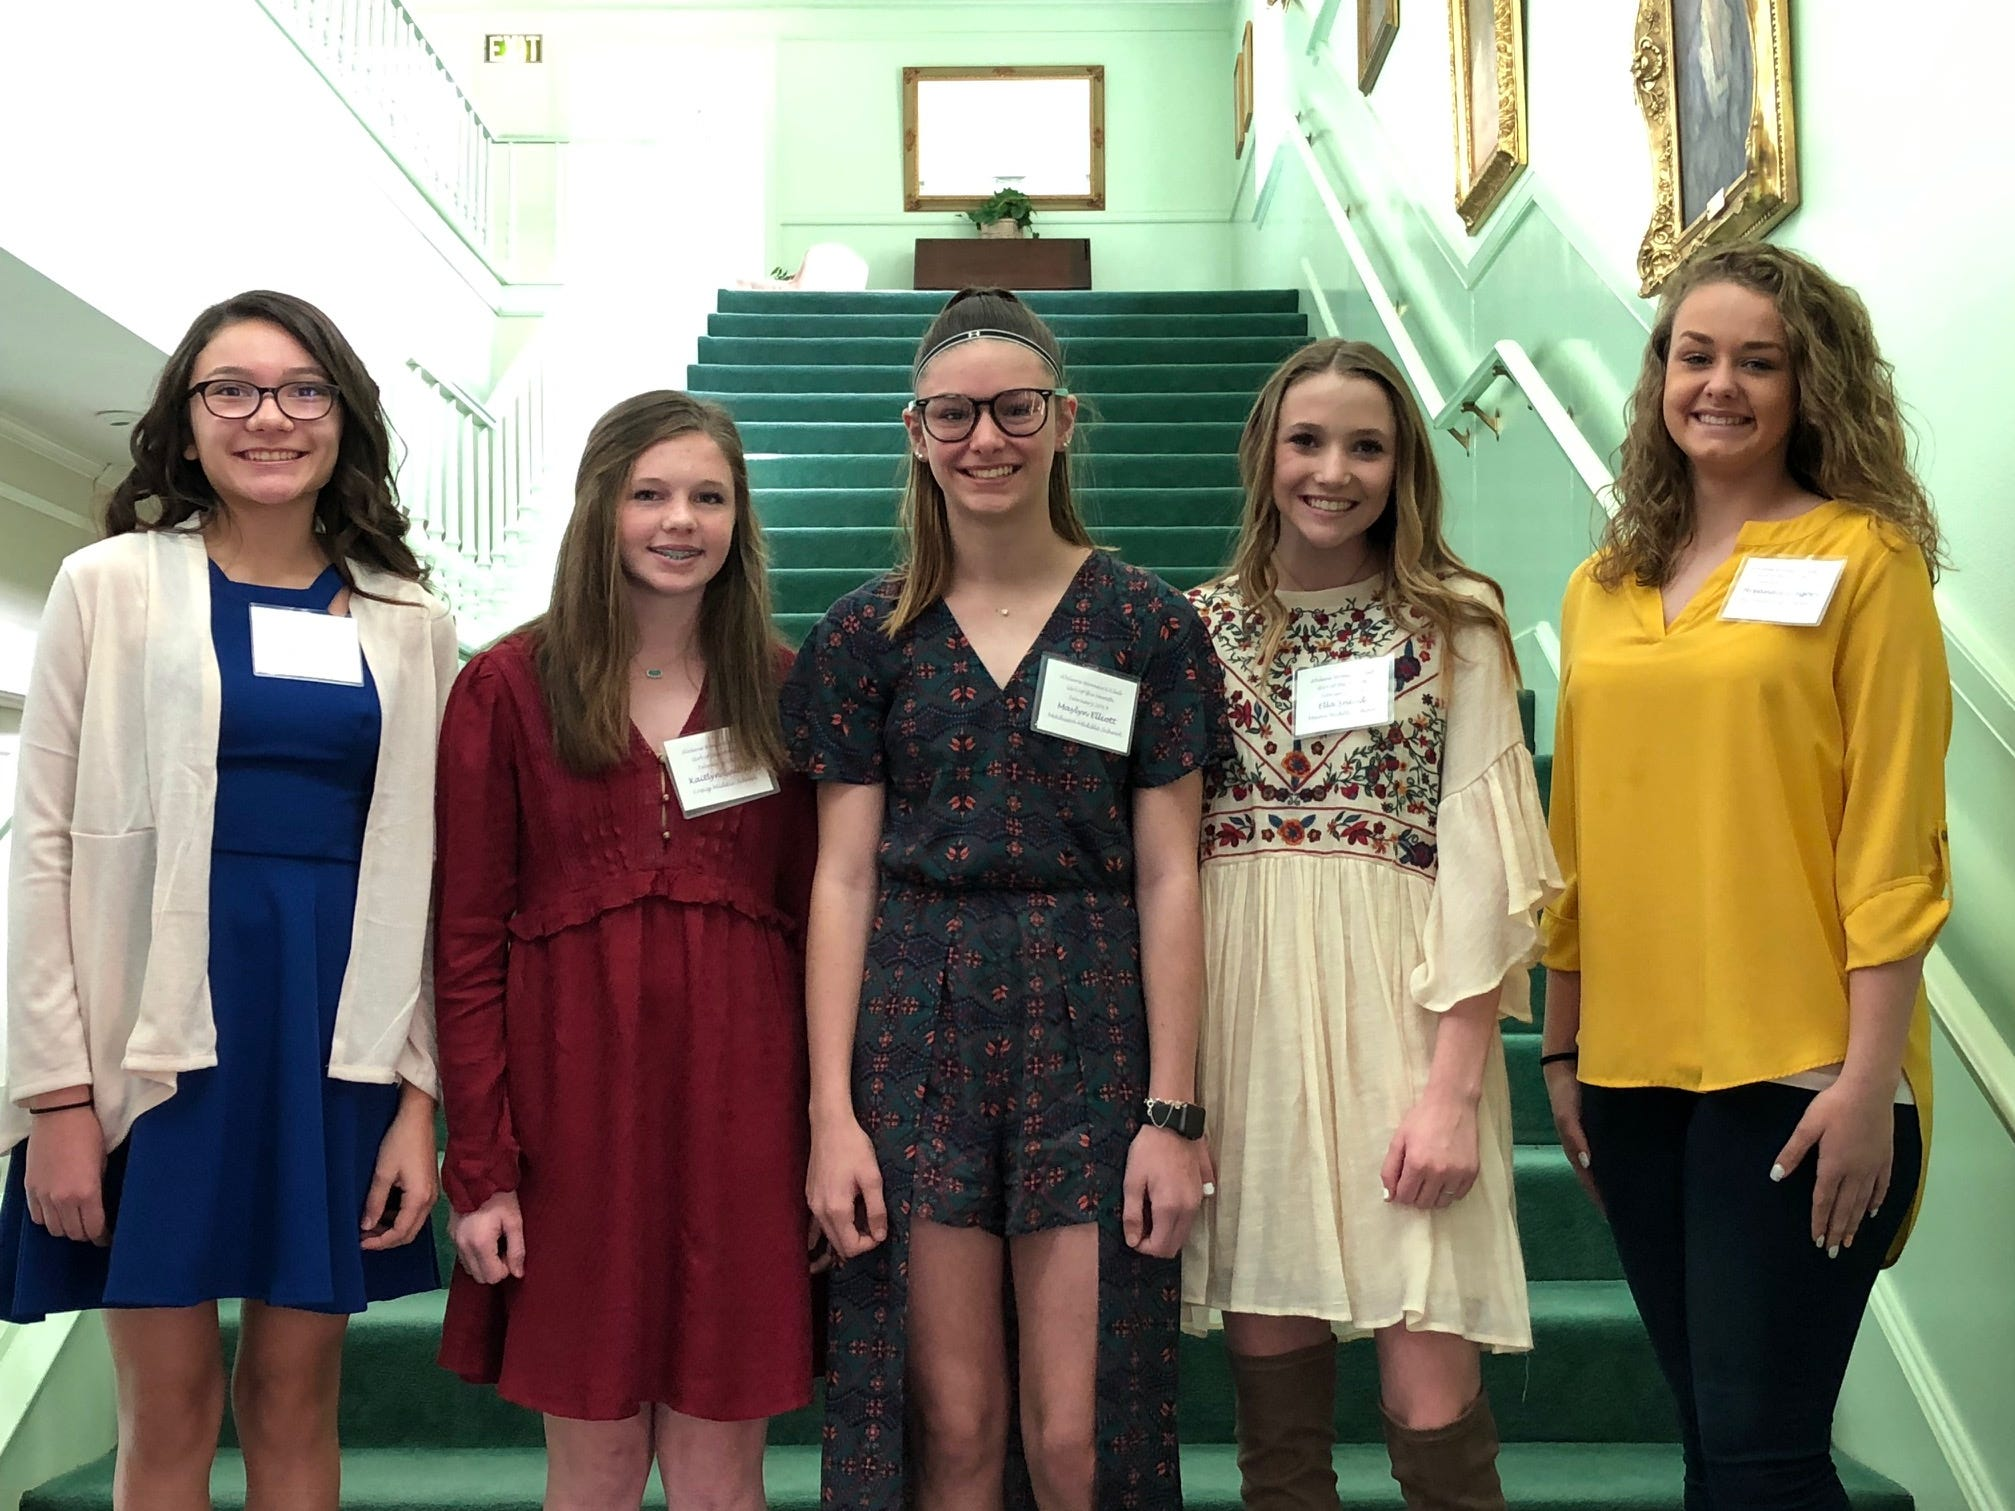 The February Girls of the Month at the Abilene Woman's Club. From left: Alexa Moncayo, Clack Middle School; Kaitlyn Gaither, Craig Middle School; Maylyn Elliott, Madison Middle School; Ella Snead, Mann Middle School; and Breanna Gregory, Wylie Middle School.